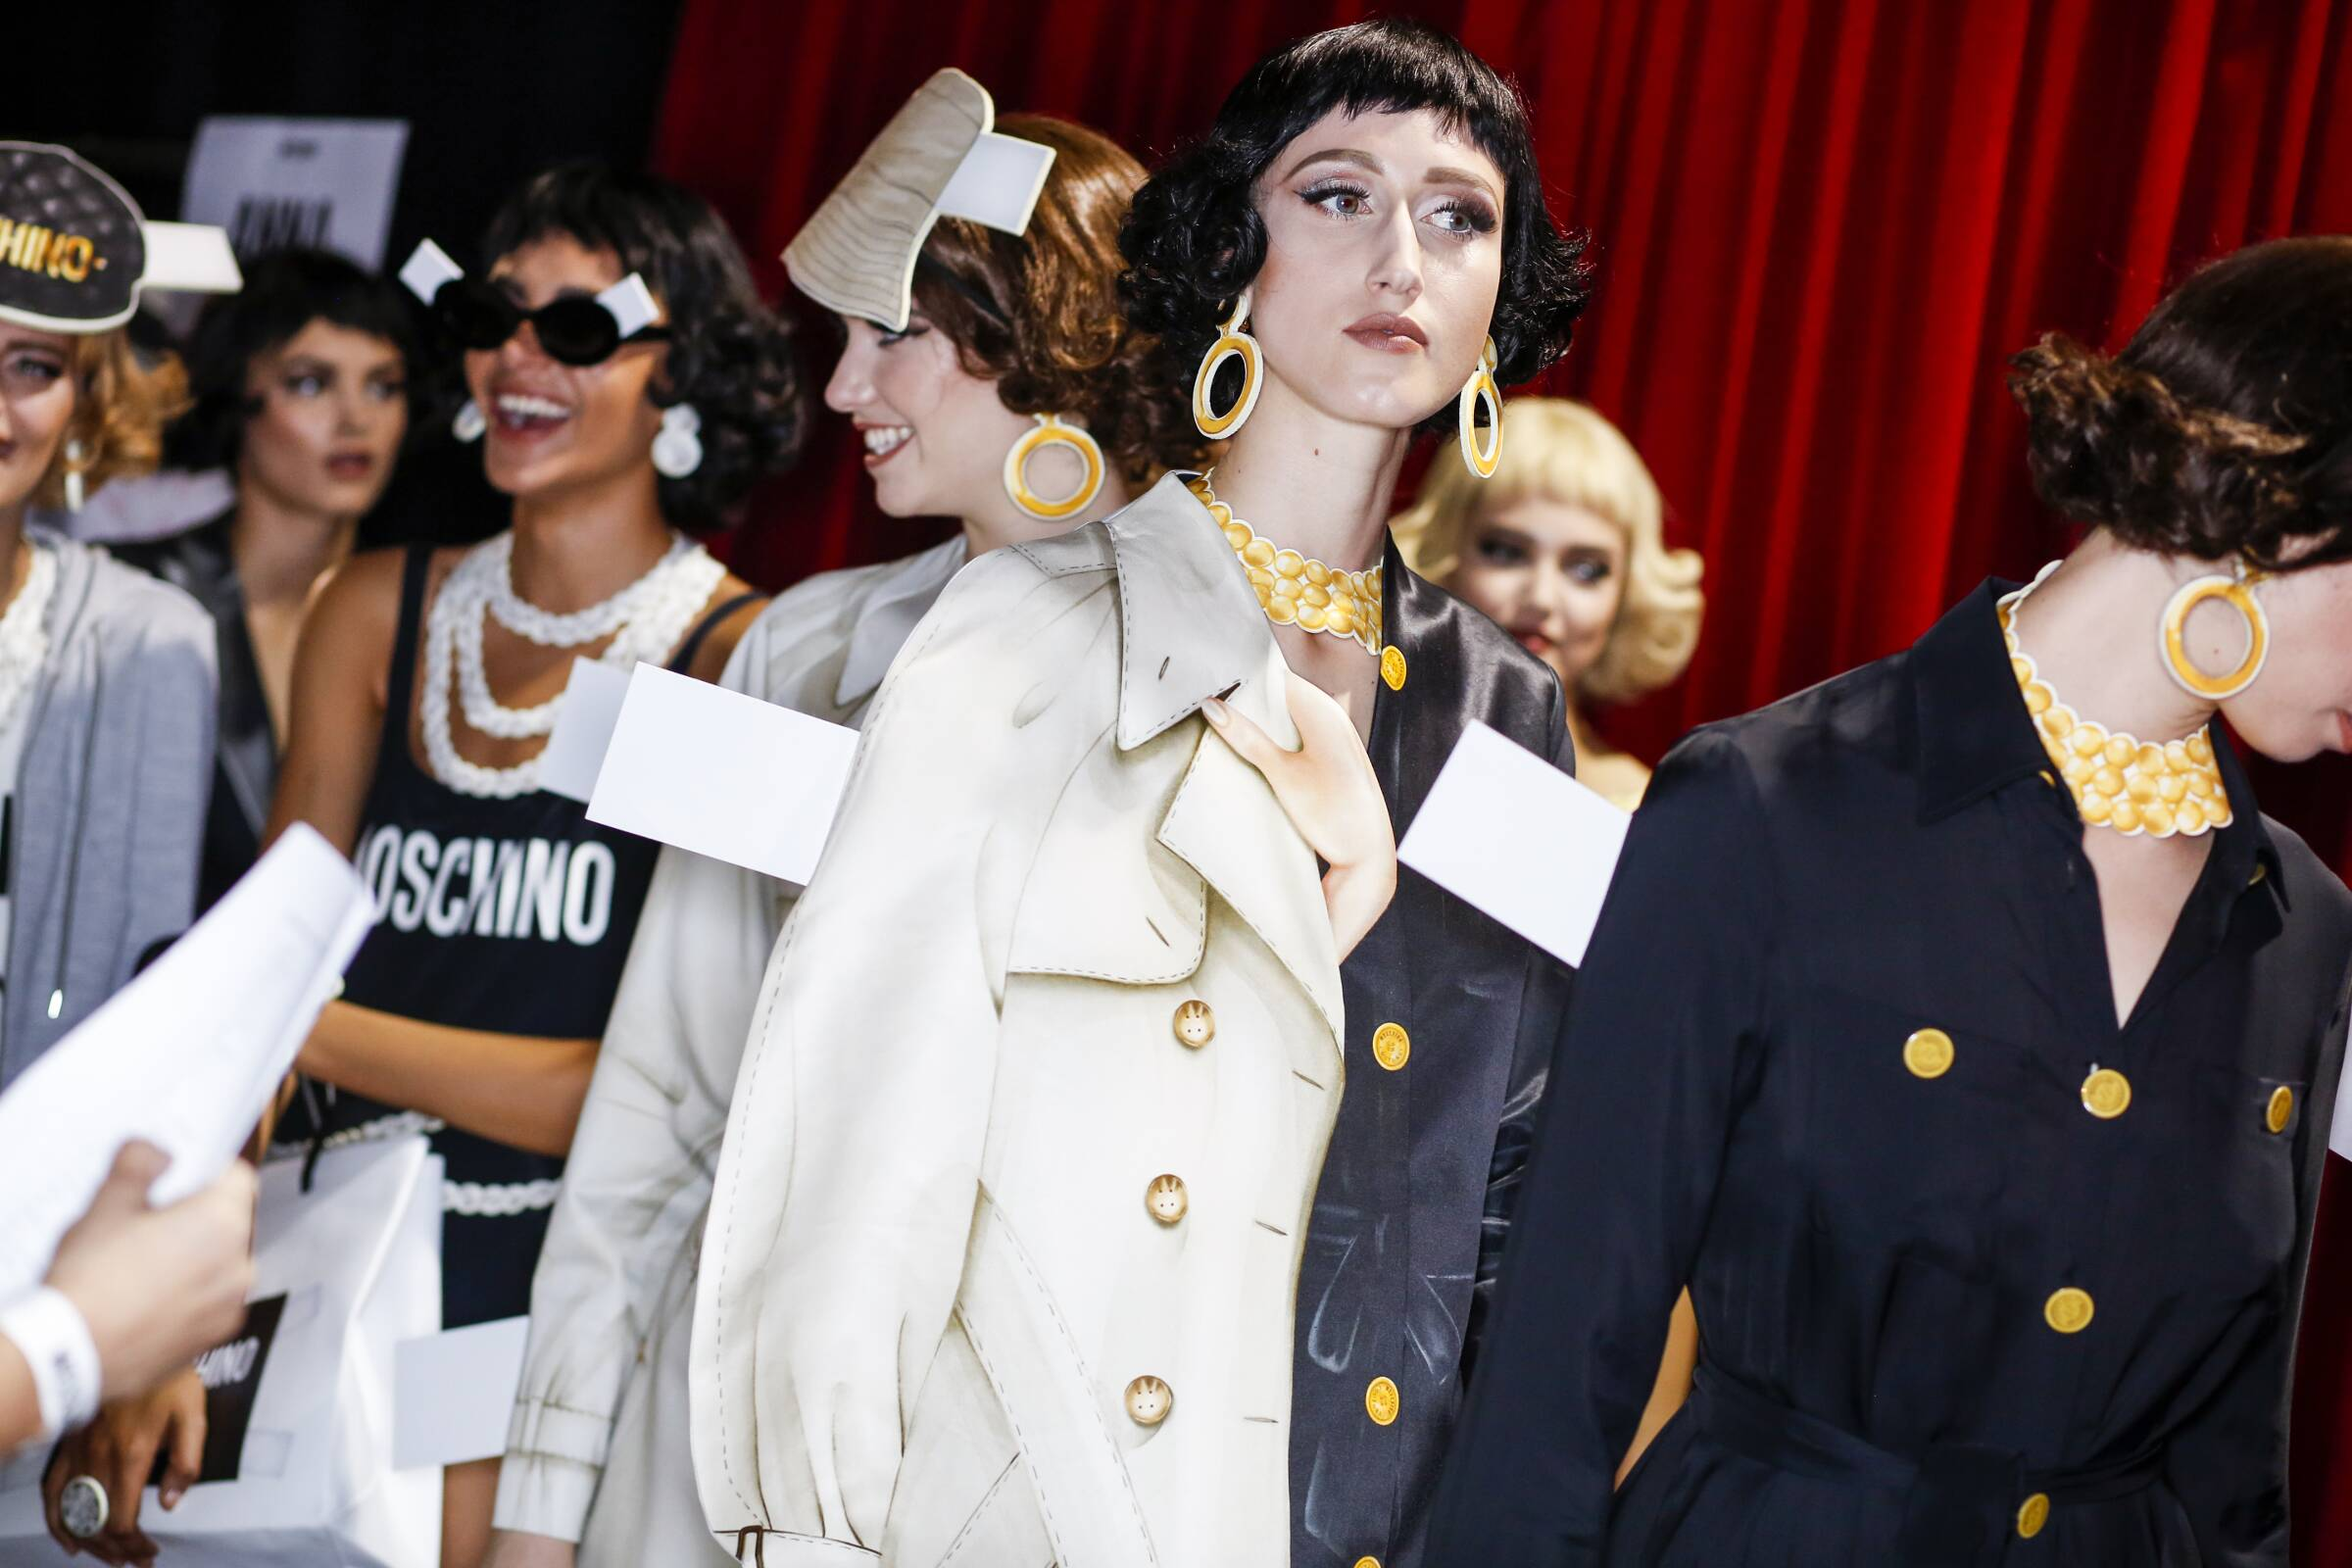 Backstage Moschino Fashion Show Women Models